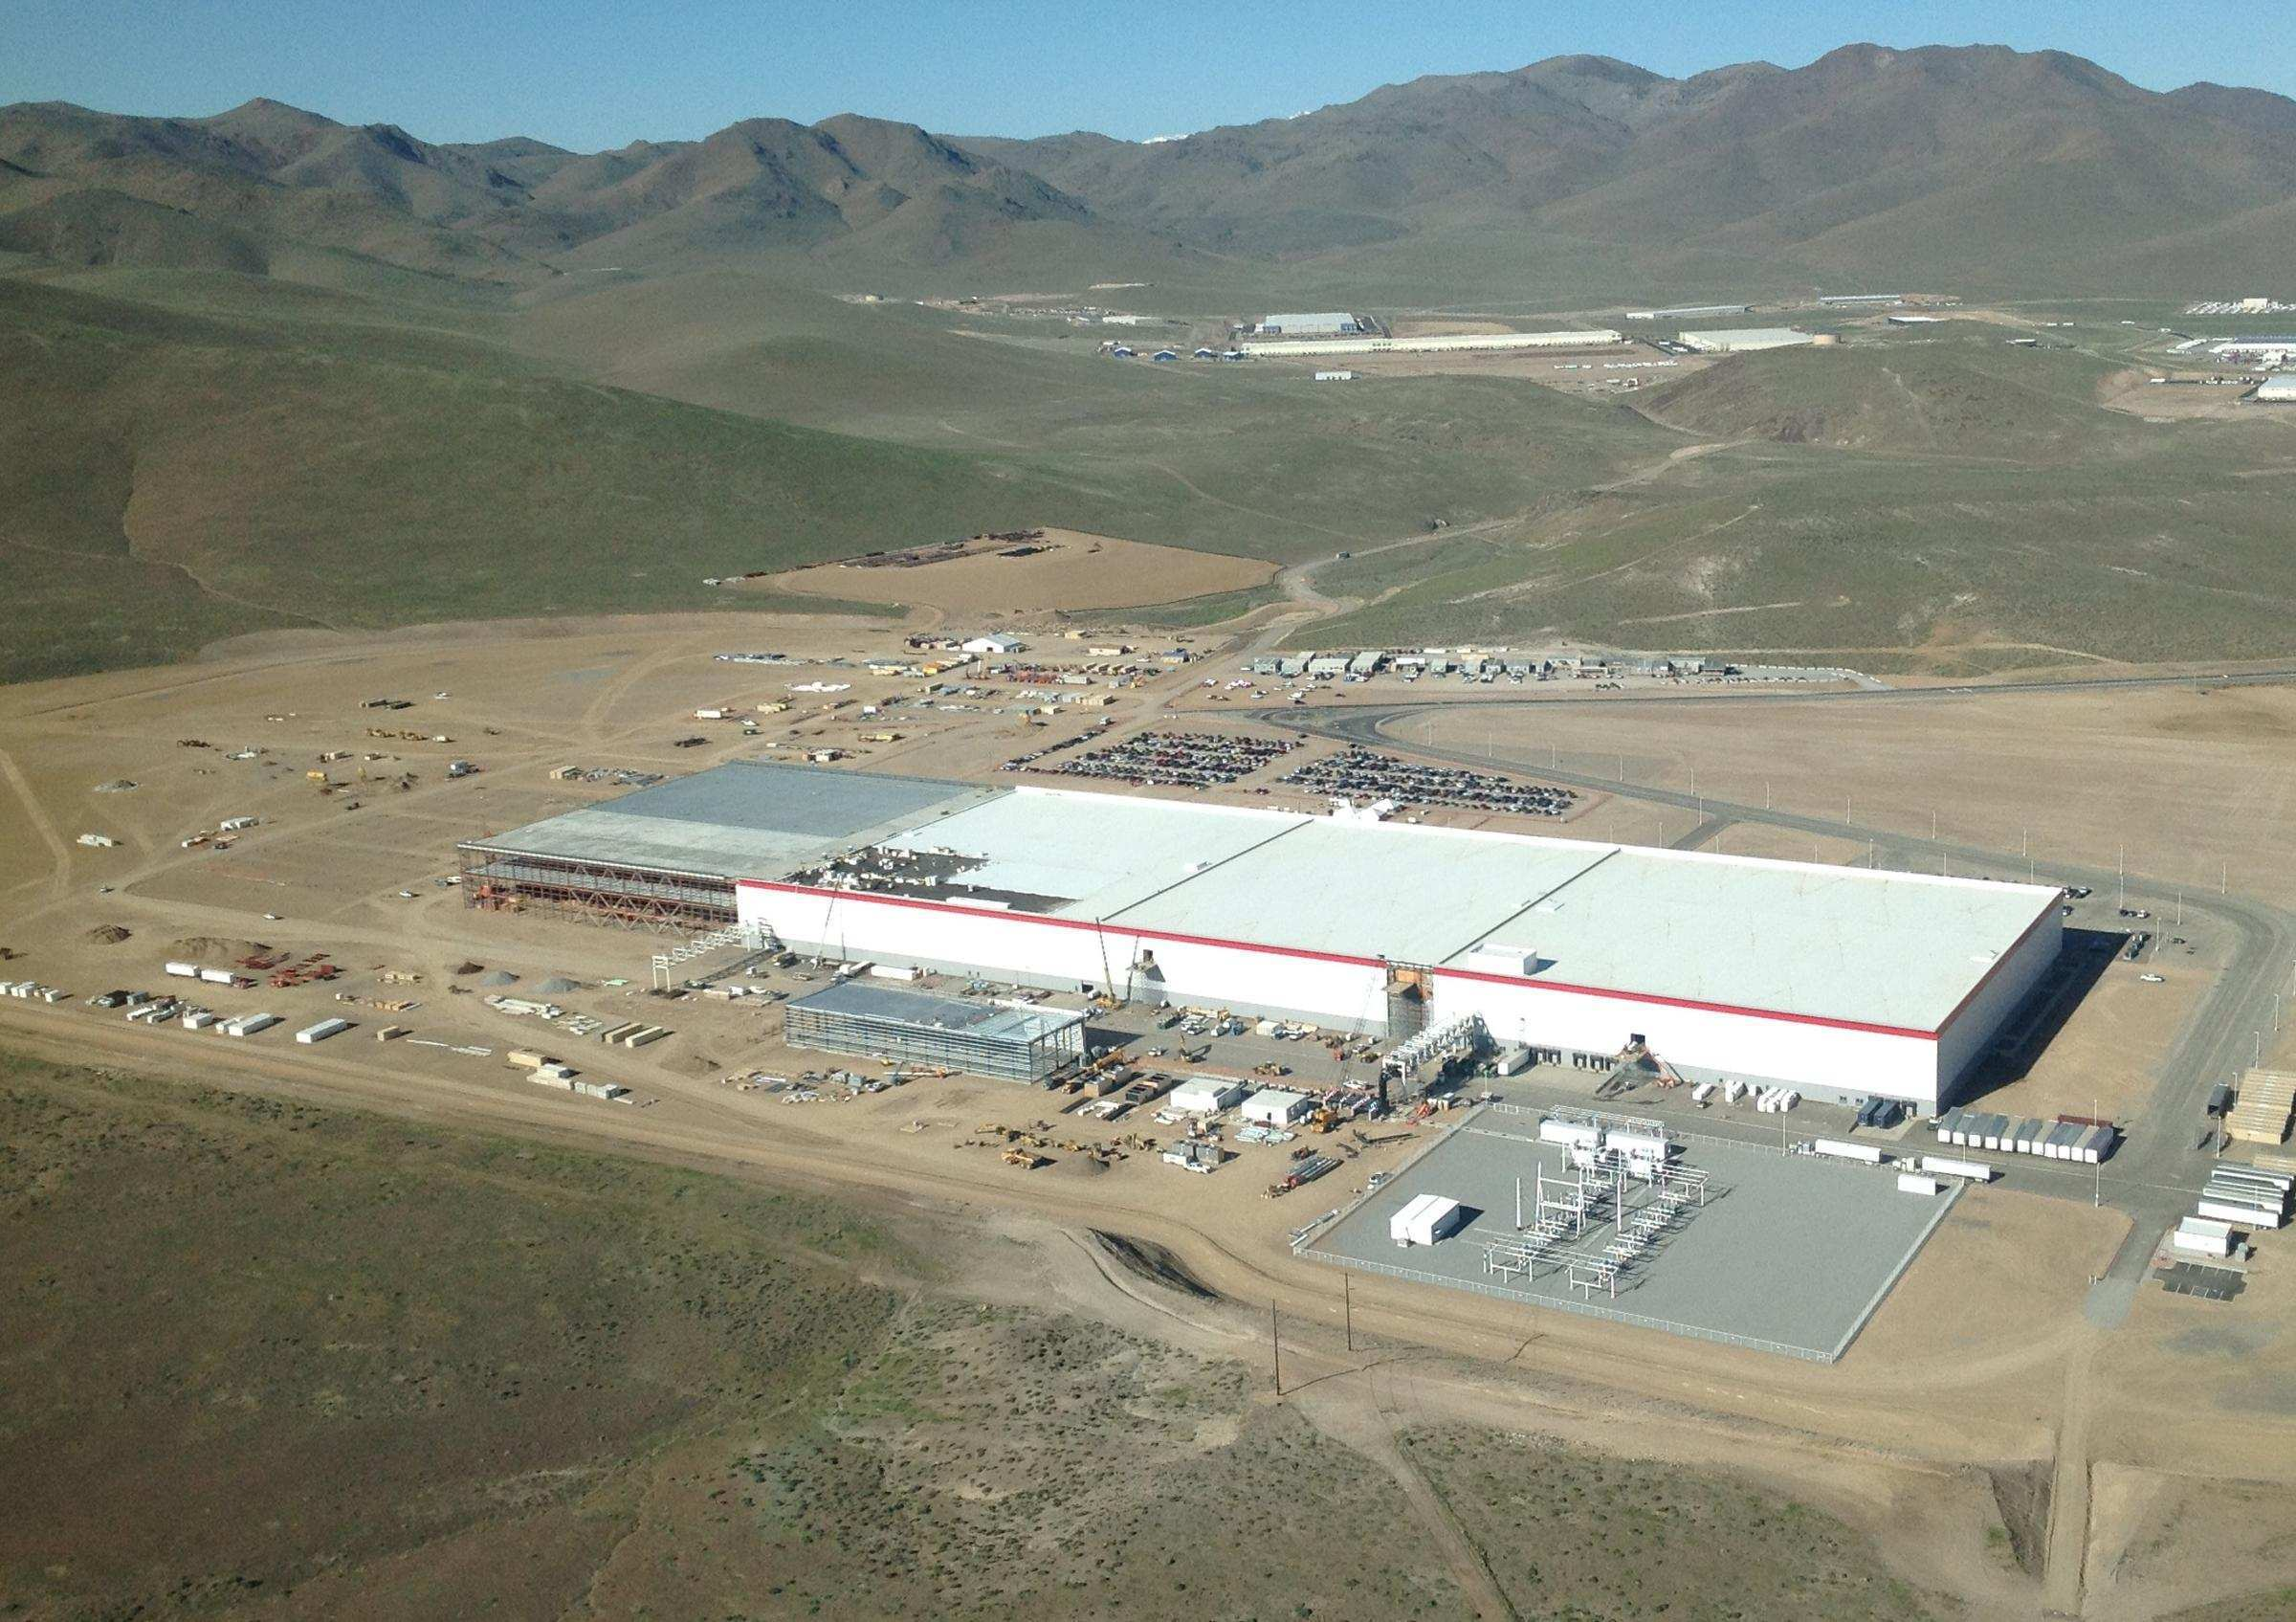 31 Gallery of Tesla Gigafactory 2020 Reviews with Tesla Gigafactory 2020